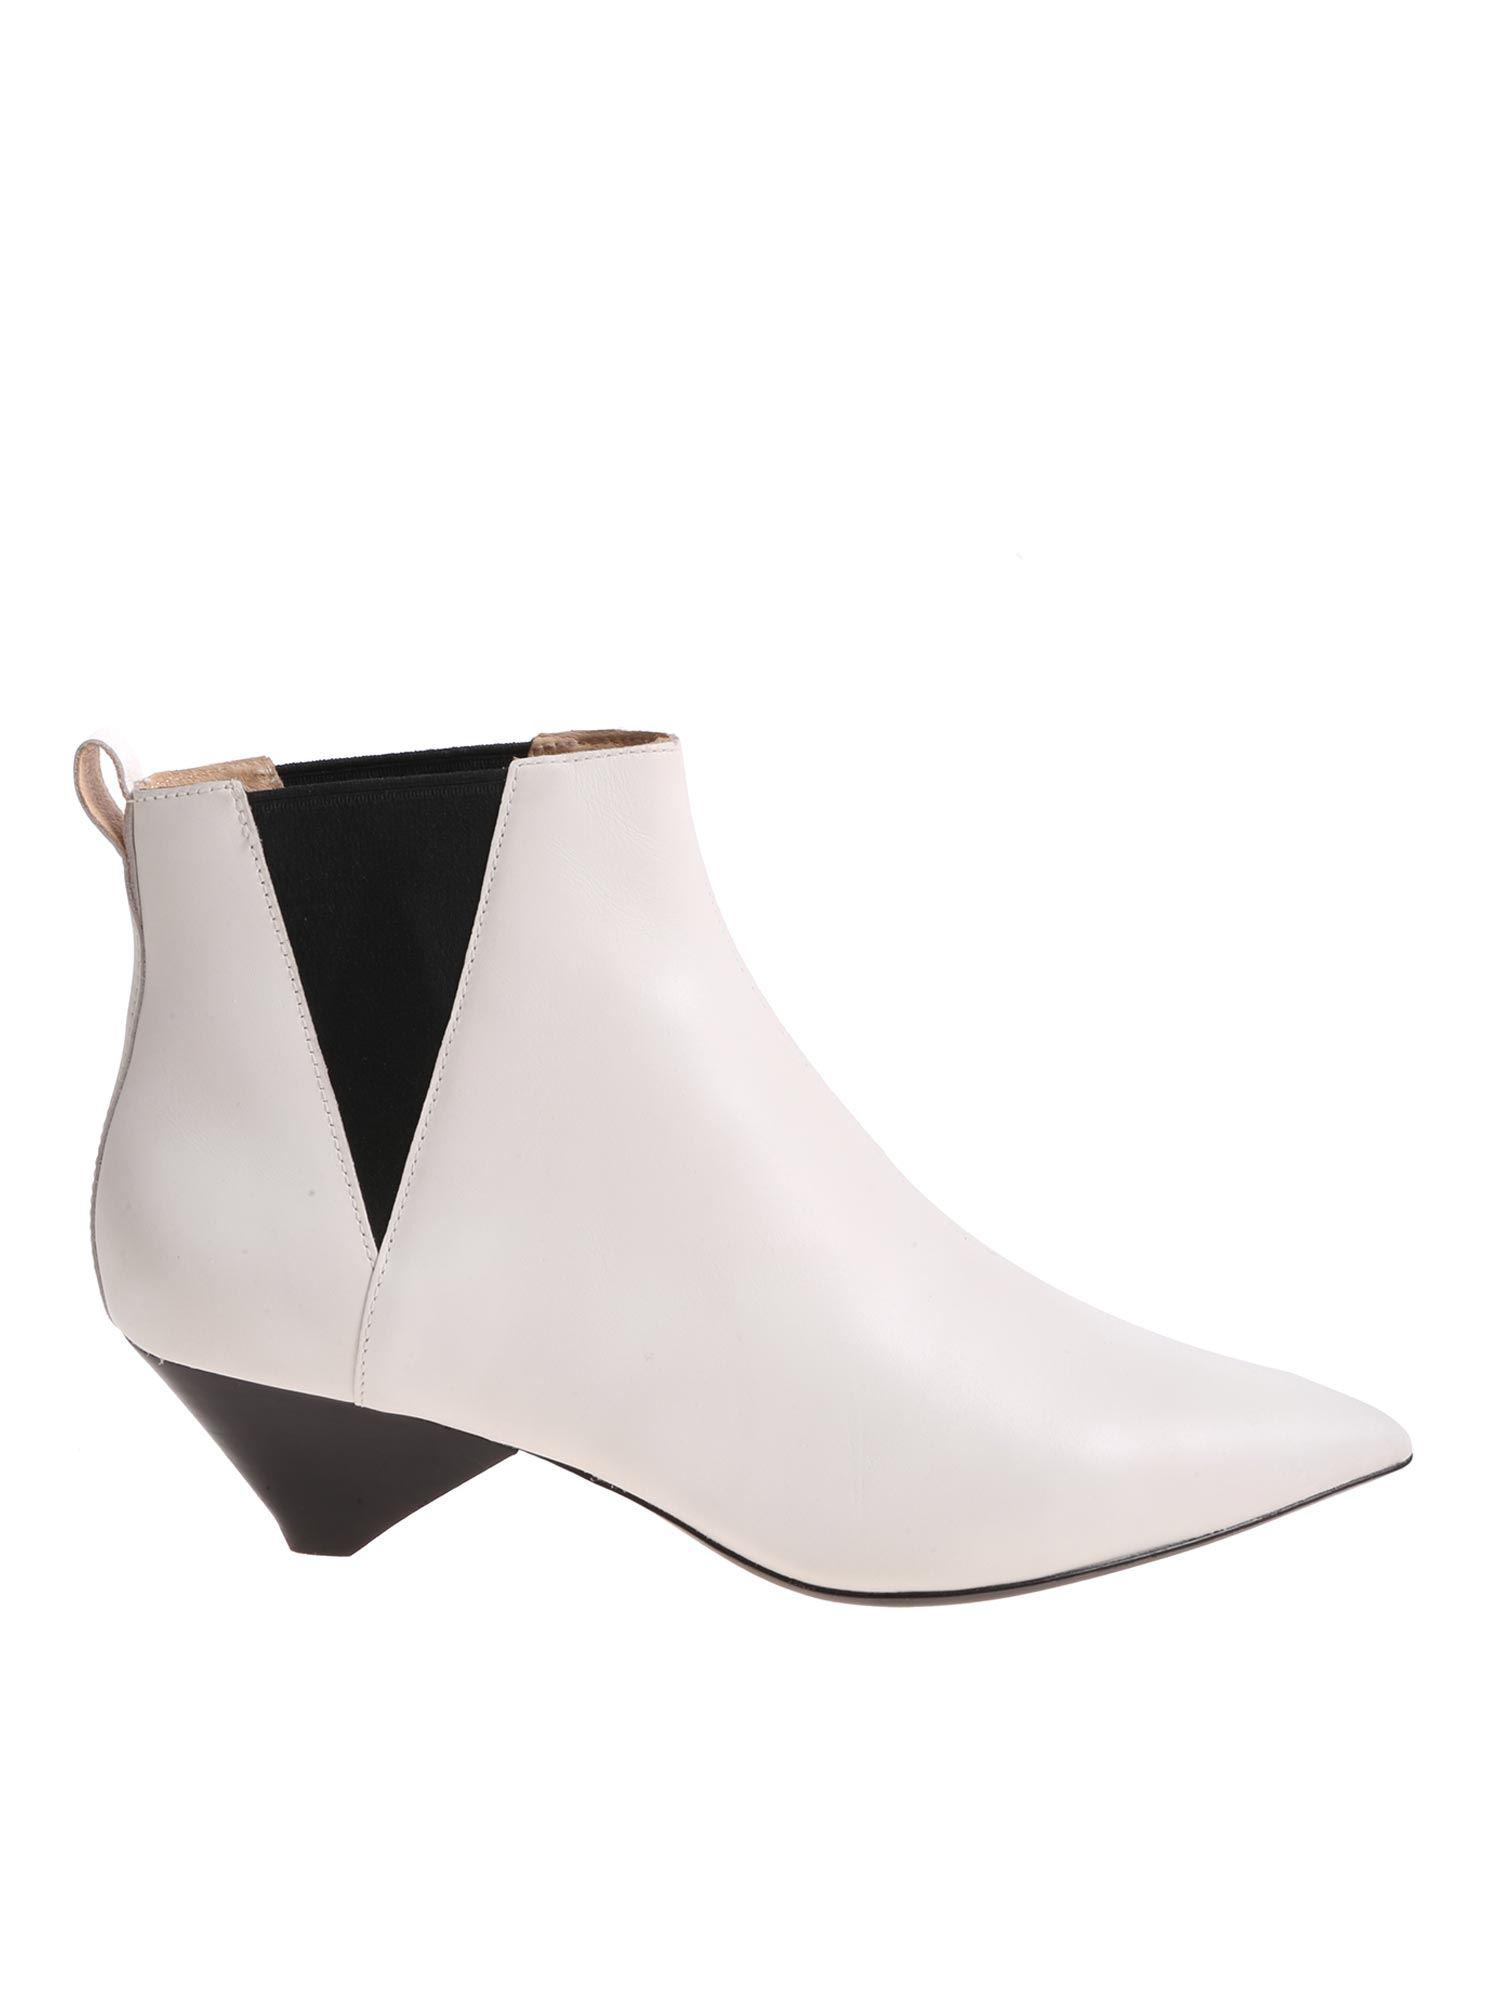 561e5bfb0 Lyst - Ash Cosmos Boots in White